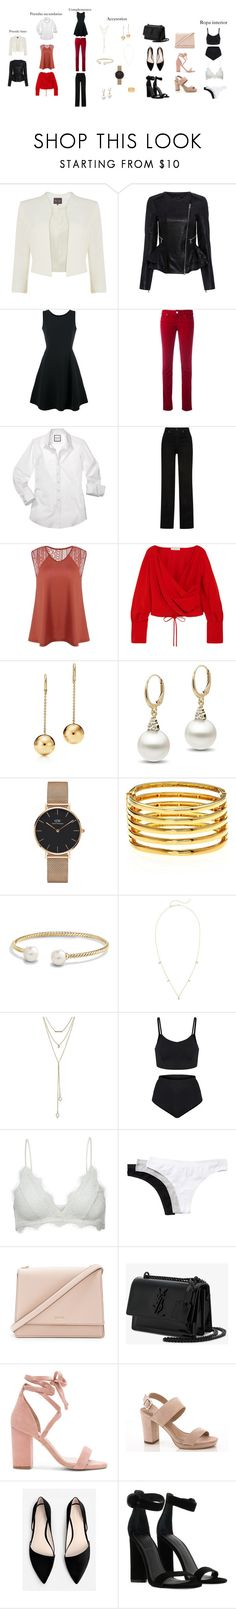 """Sin título #135"" by loraine-parroquin on Polyvore featuring Phase Eight, Marissa Webb, Emporio Armani, Armani Jeans, Khaite, Adeam, Daniel Wellington, Kenneth Jay Lane, David Yurman y ZoÃ« Chicco"